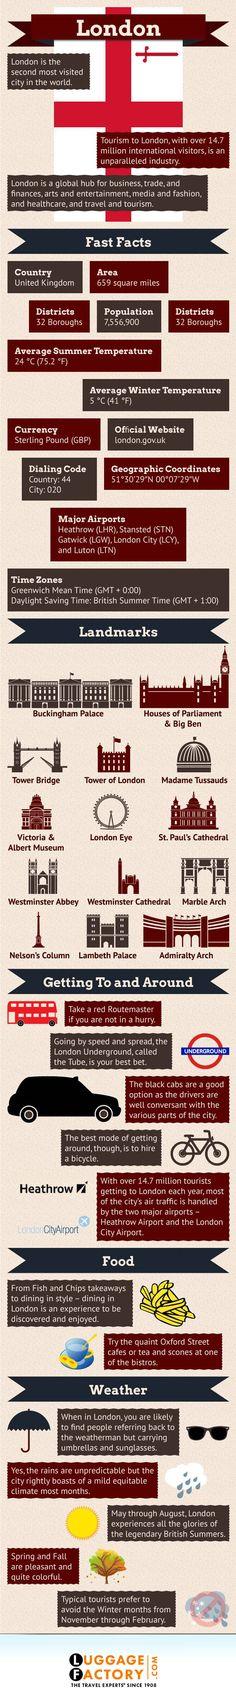 Before you Visit London Take a few tips from the travel experts. http://www.luggagefactory.com